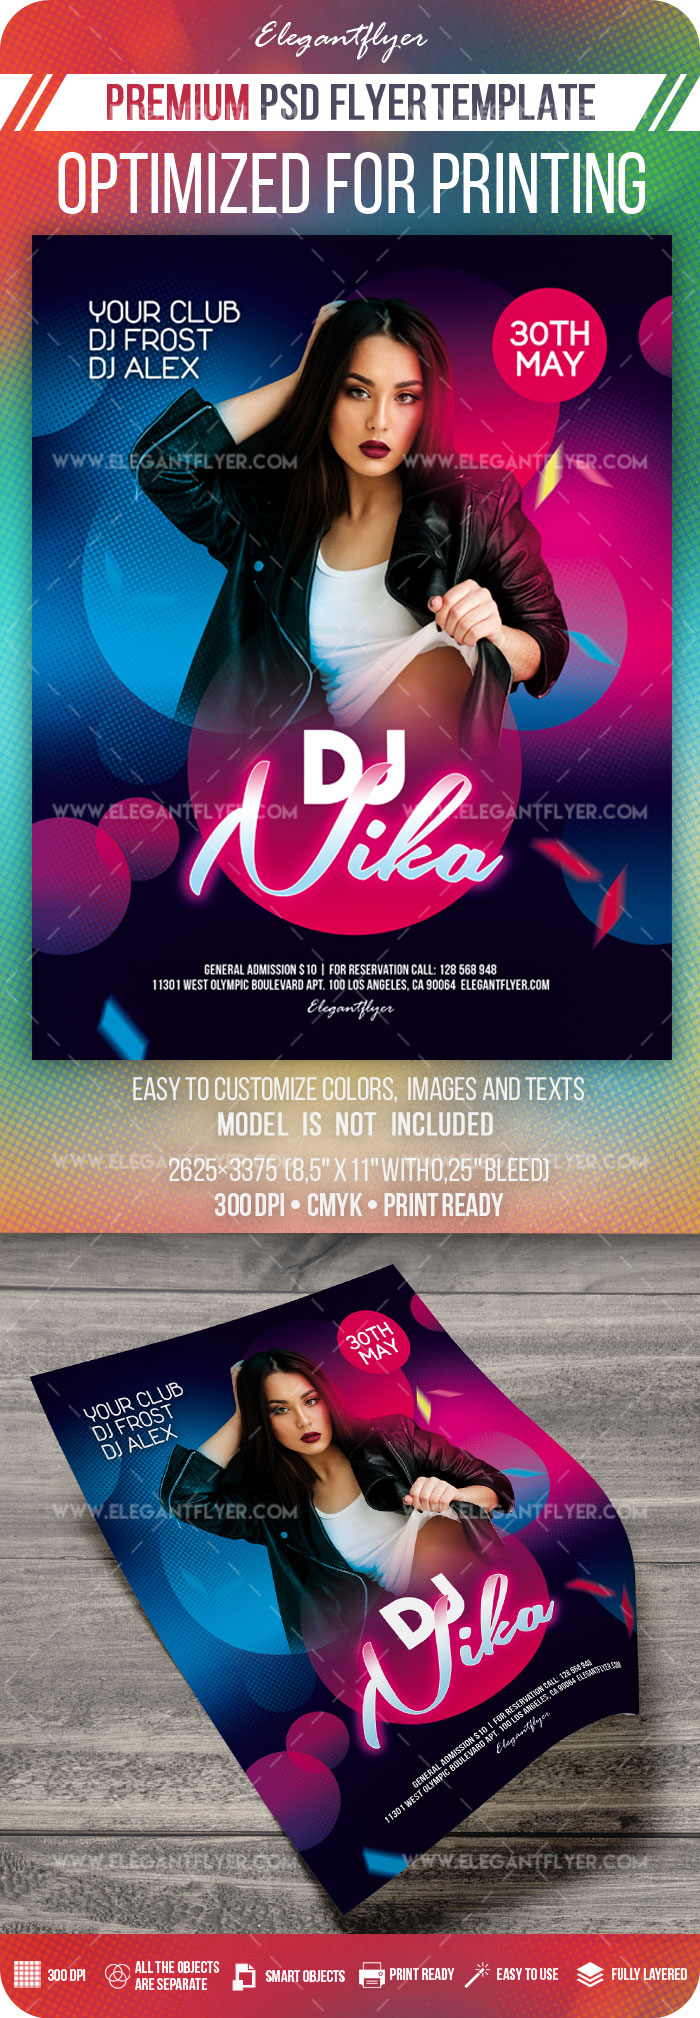 Special DJ Party – Premium PSD Flyer Template